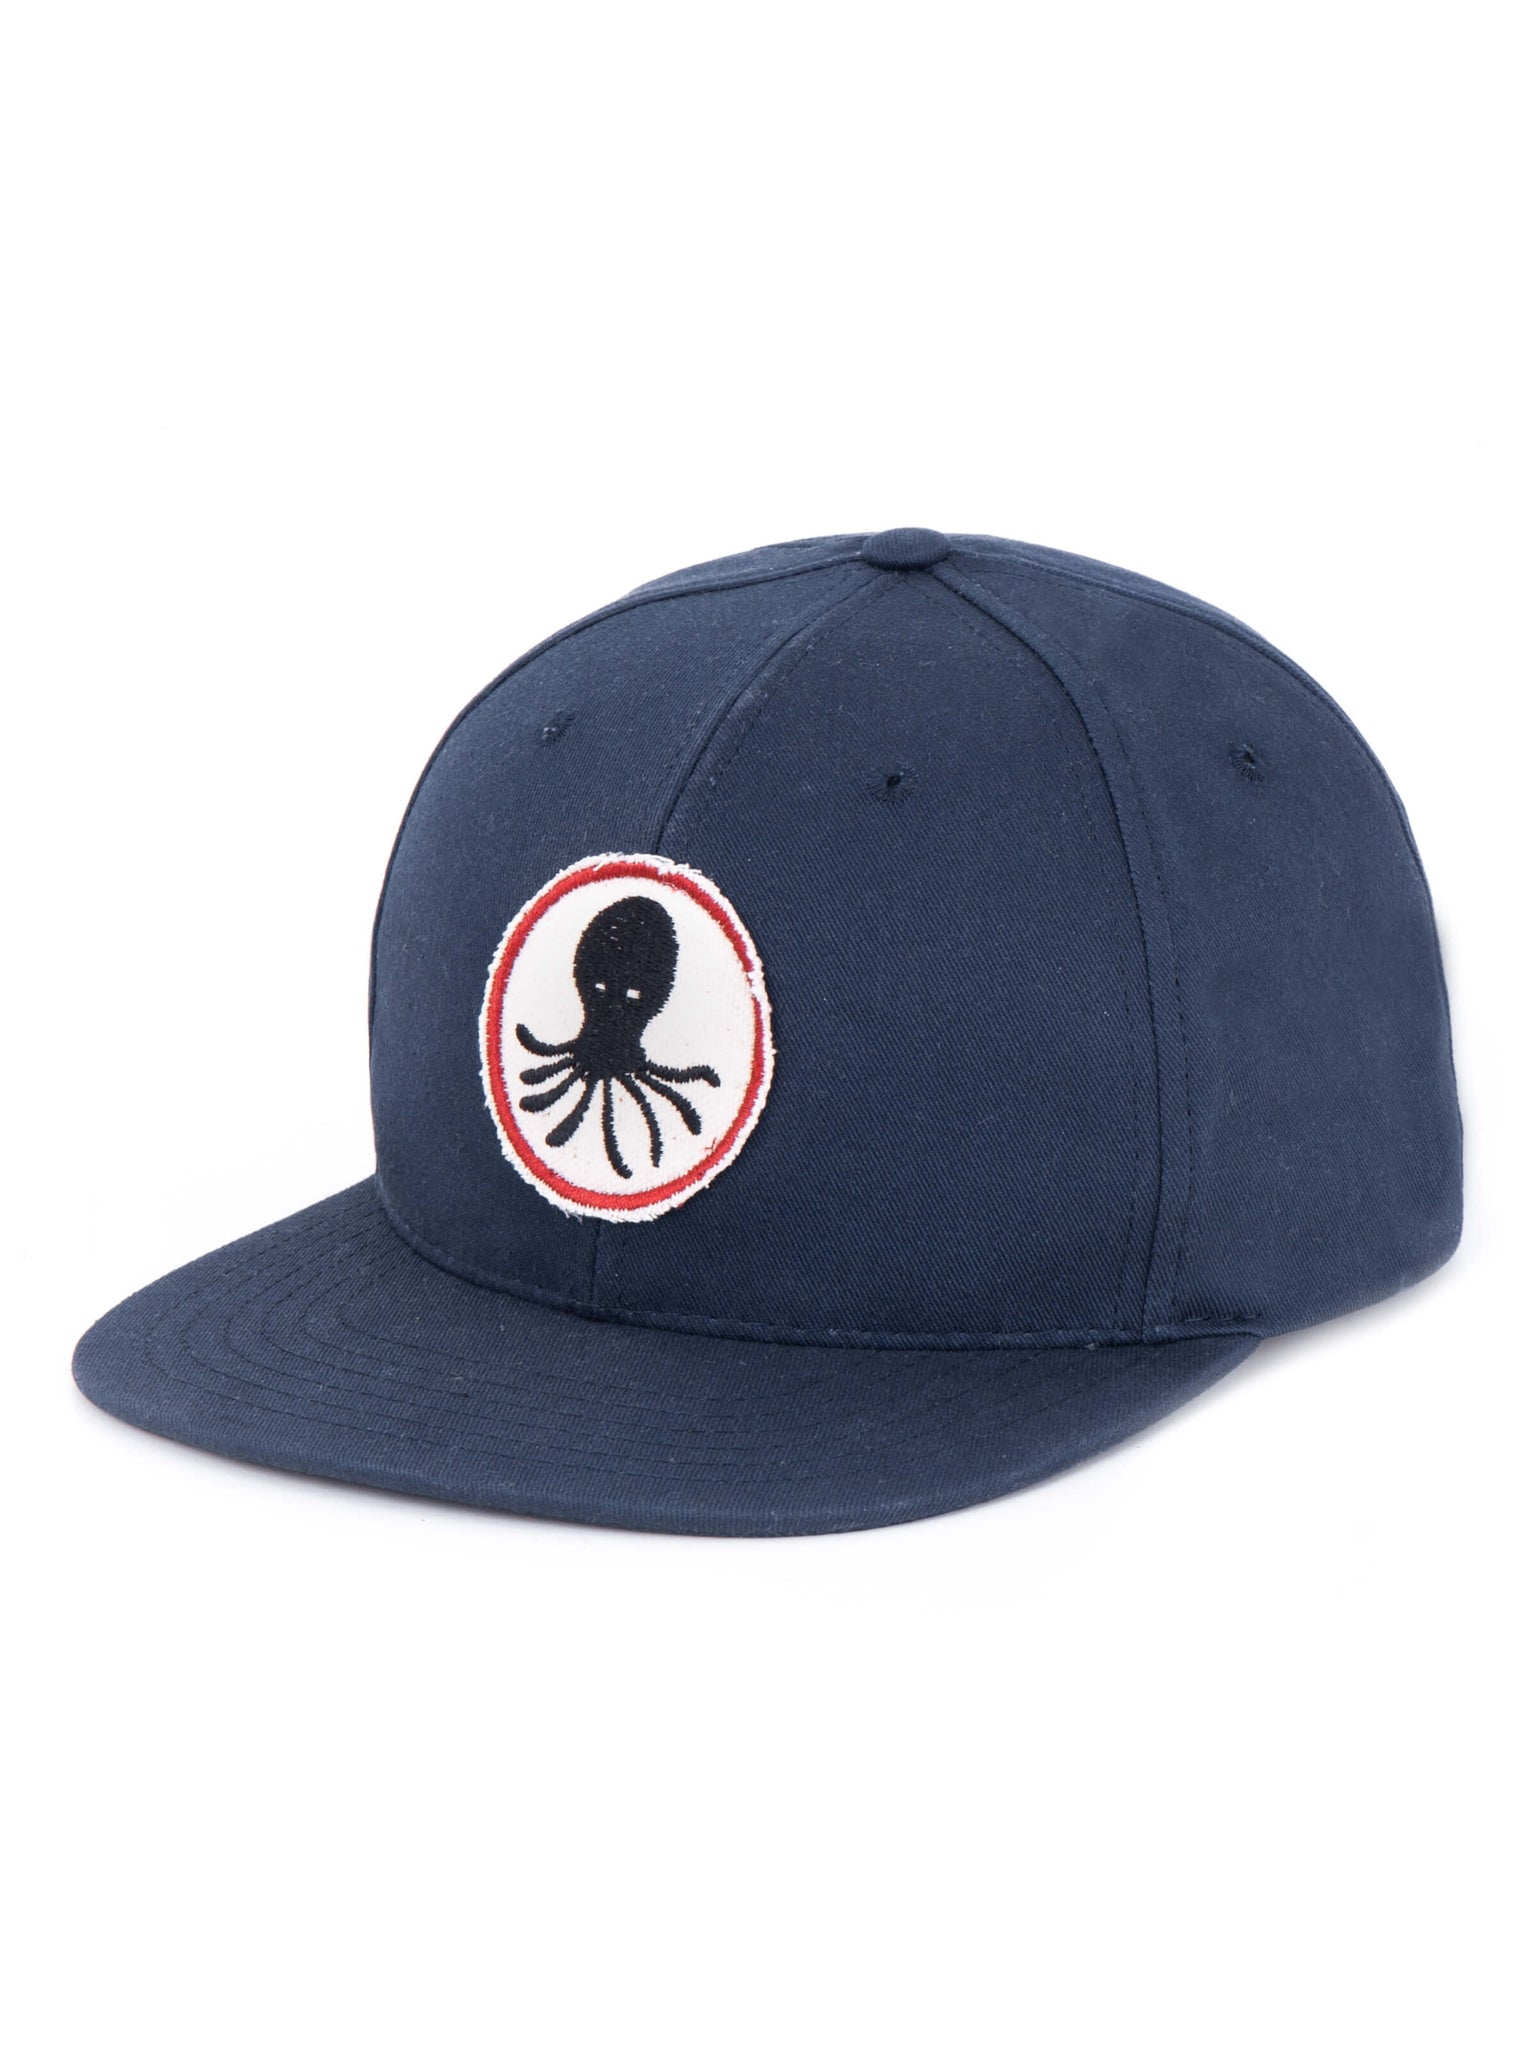 Octopus Patch Cap